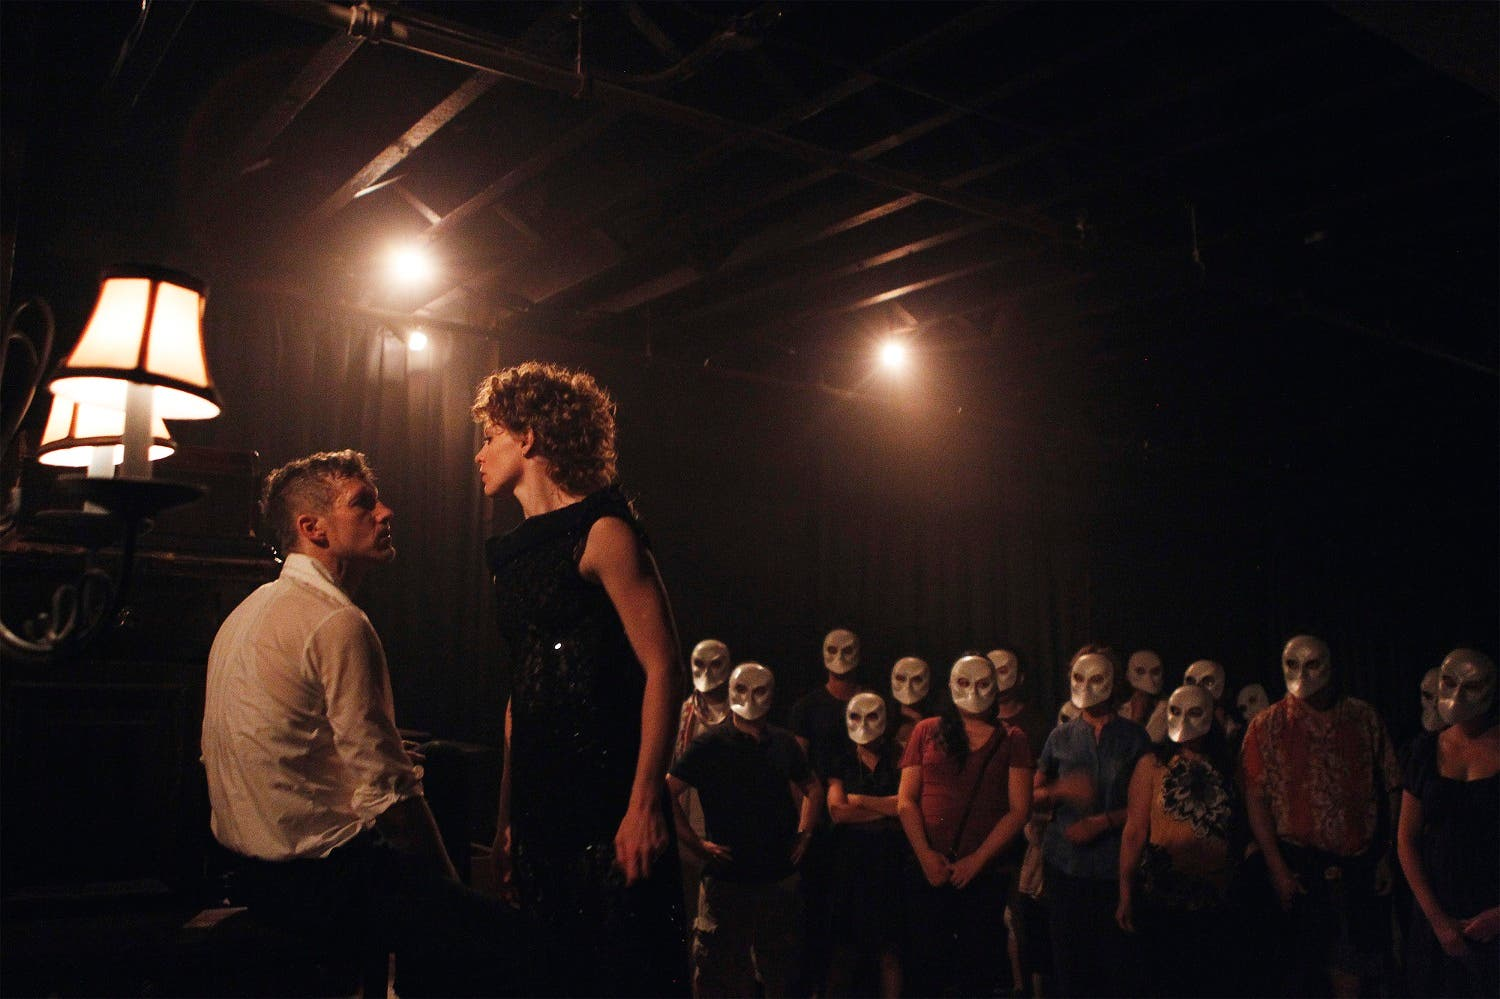 """Actors Eric Jackson Bradley and Tori Sparks perform the parts of Macbeth and Lady Macbeth in a production of """"Sleep No More"""" in New York July 25, 2011. (File Photo: Reuters)"""